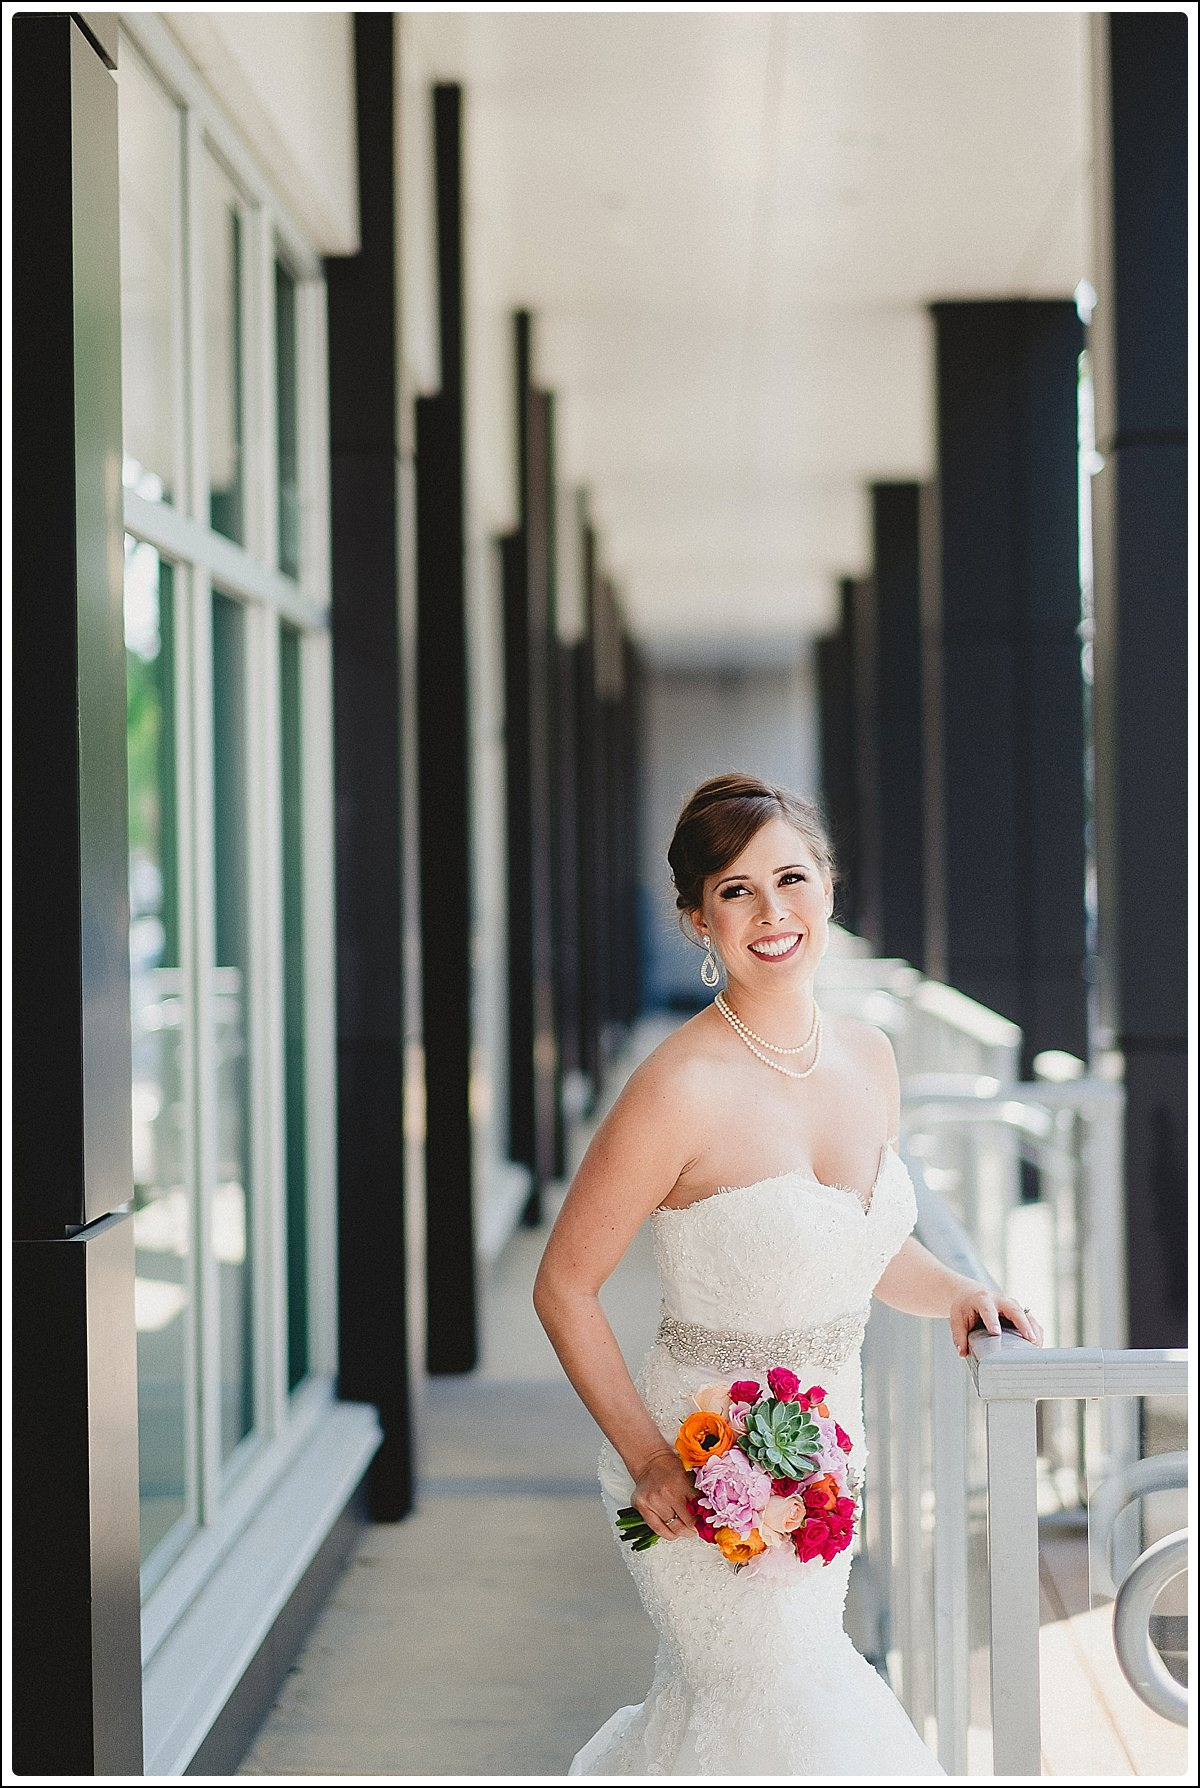 Calgary_Wedding_Photographers_-_Shannon_Teddy_0046.jpg